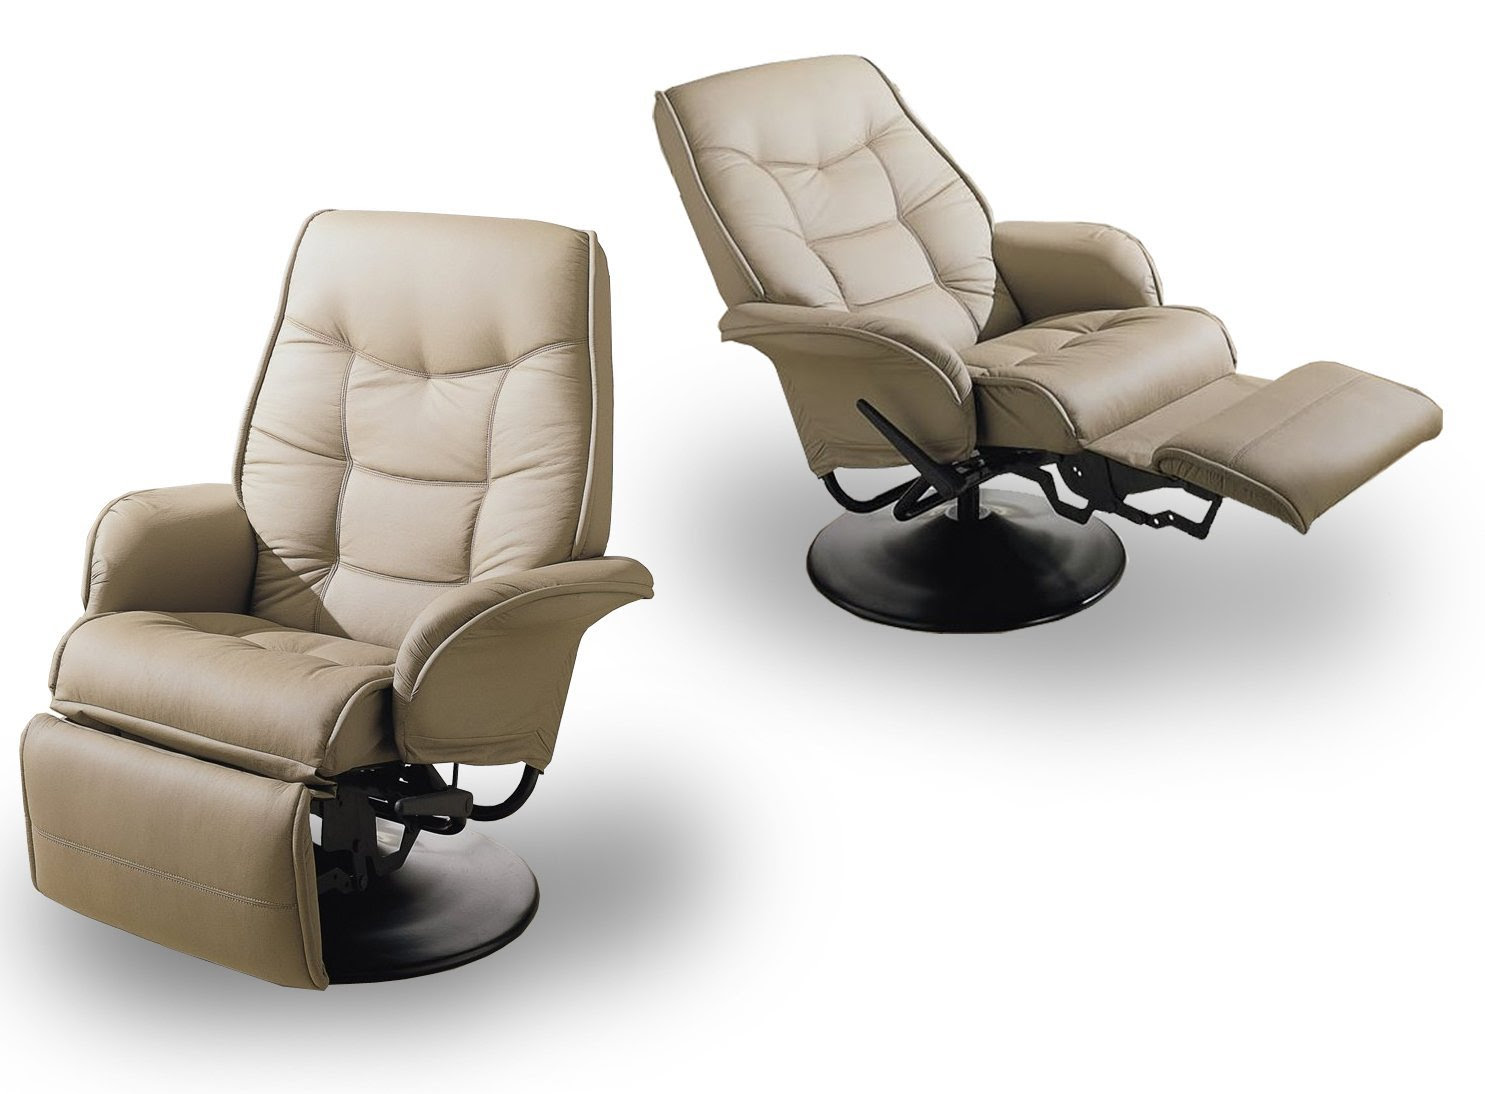 RV Motorhome Swivel Recliner